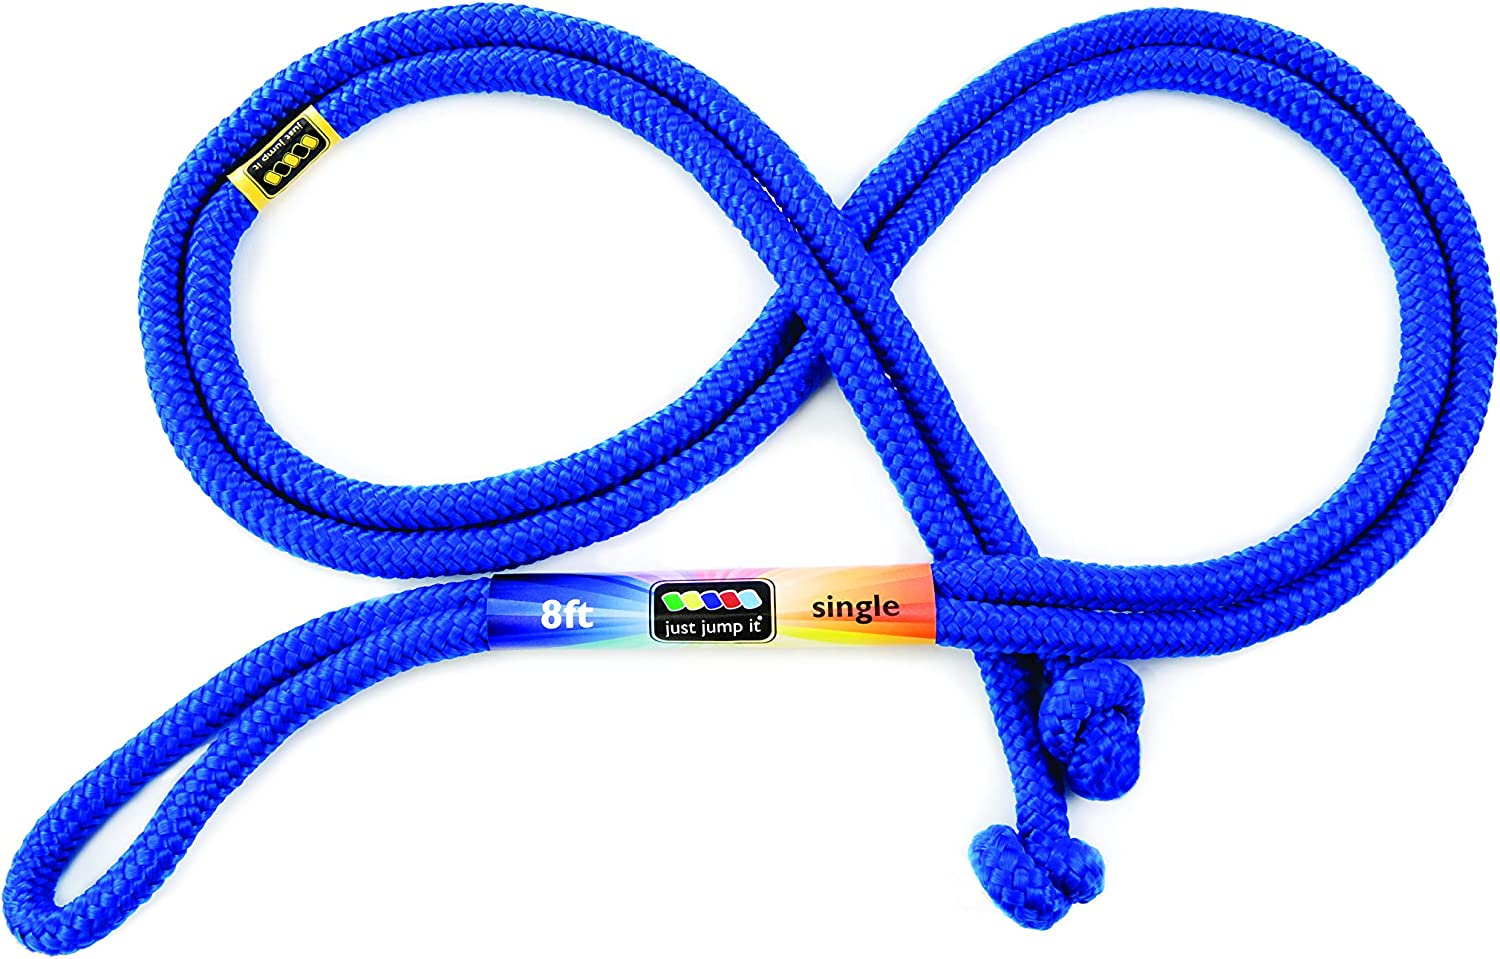 Just Jump It 8 Industry No. 1 Foot Single Over item handling ☆ Outdoor - Active Rope Fitn Youth